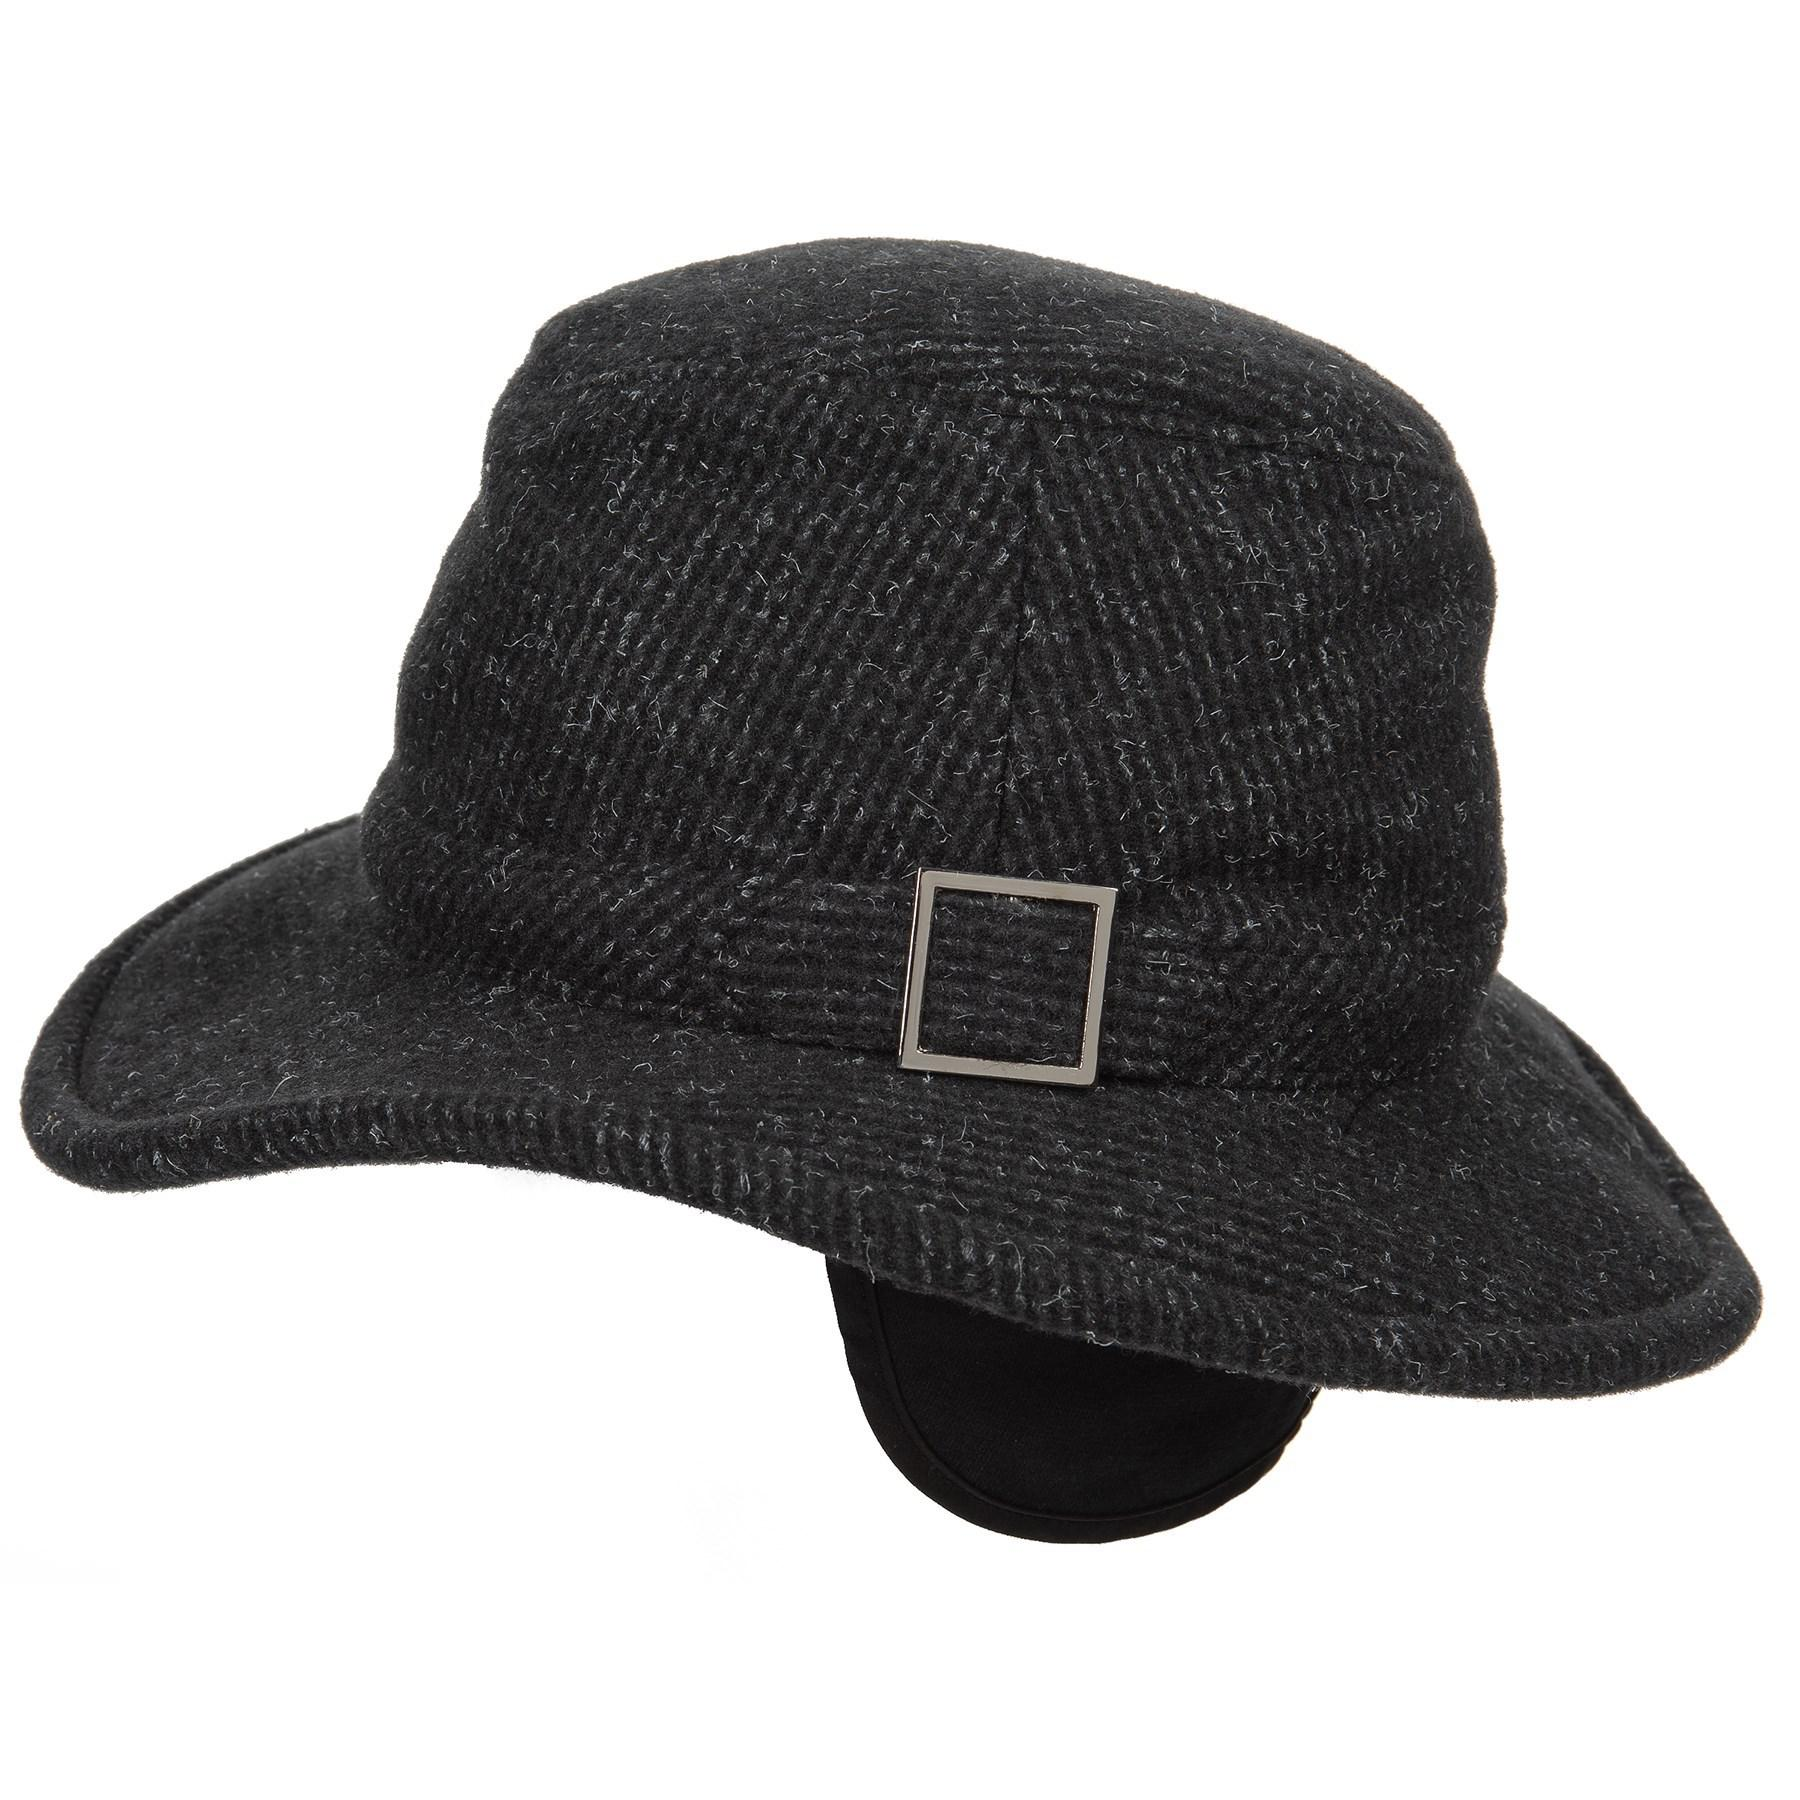 5bcb877566ea1 ... canada lyst tilley tec wool hat for men in gray for men 3add9 78ad3 ...